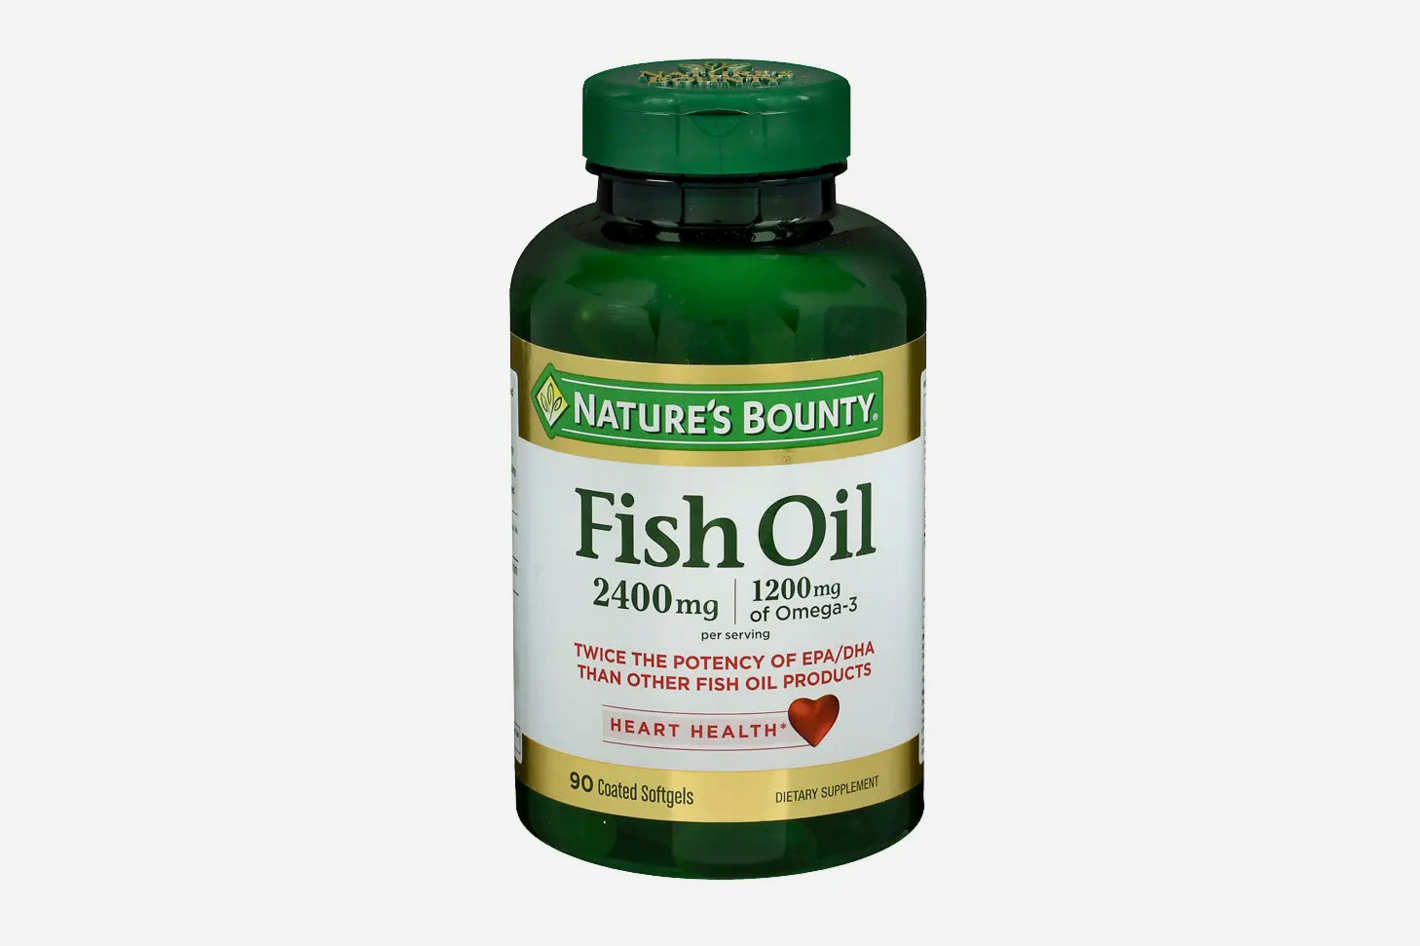 Nature's Bounty Fish Oil Odorless Gels